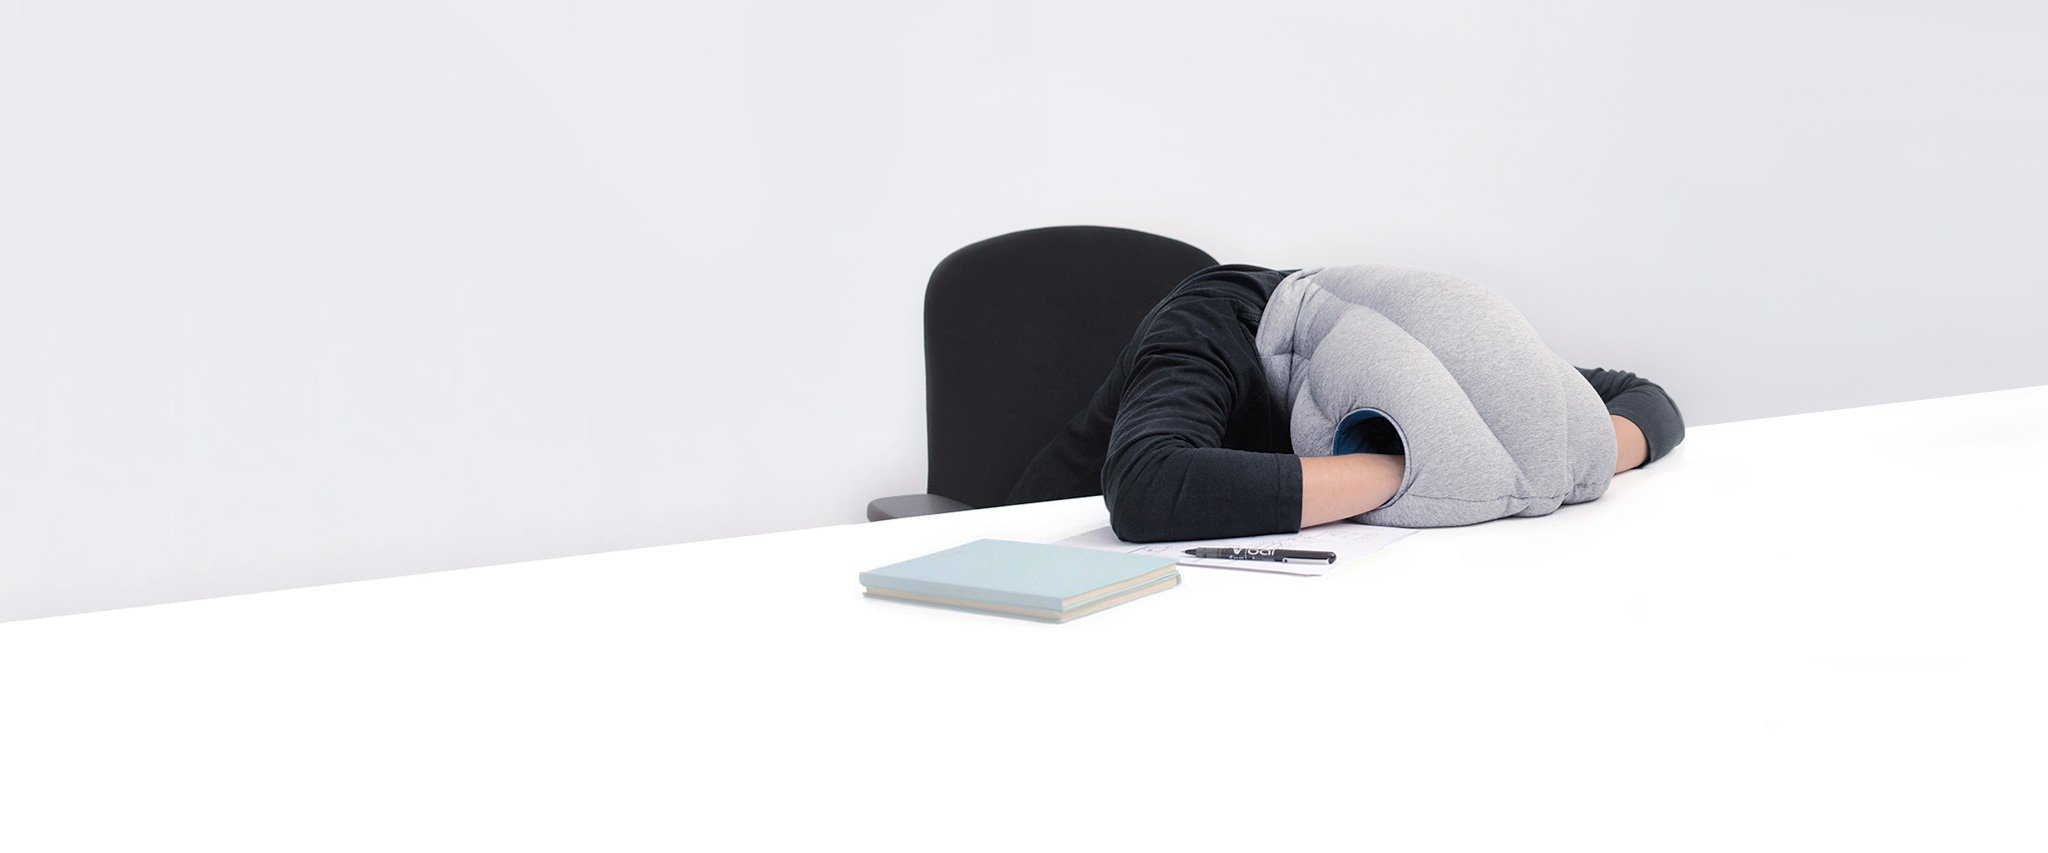 This is actually a thing! Image: OSTRICHPILLOW(R) link  here